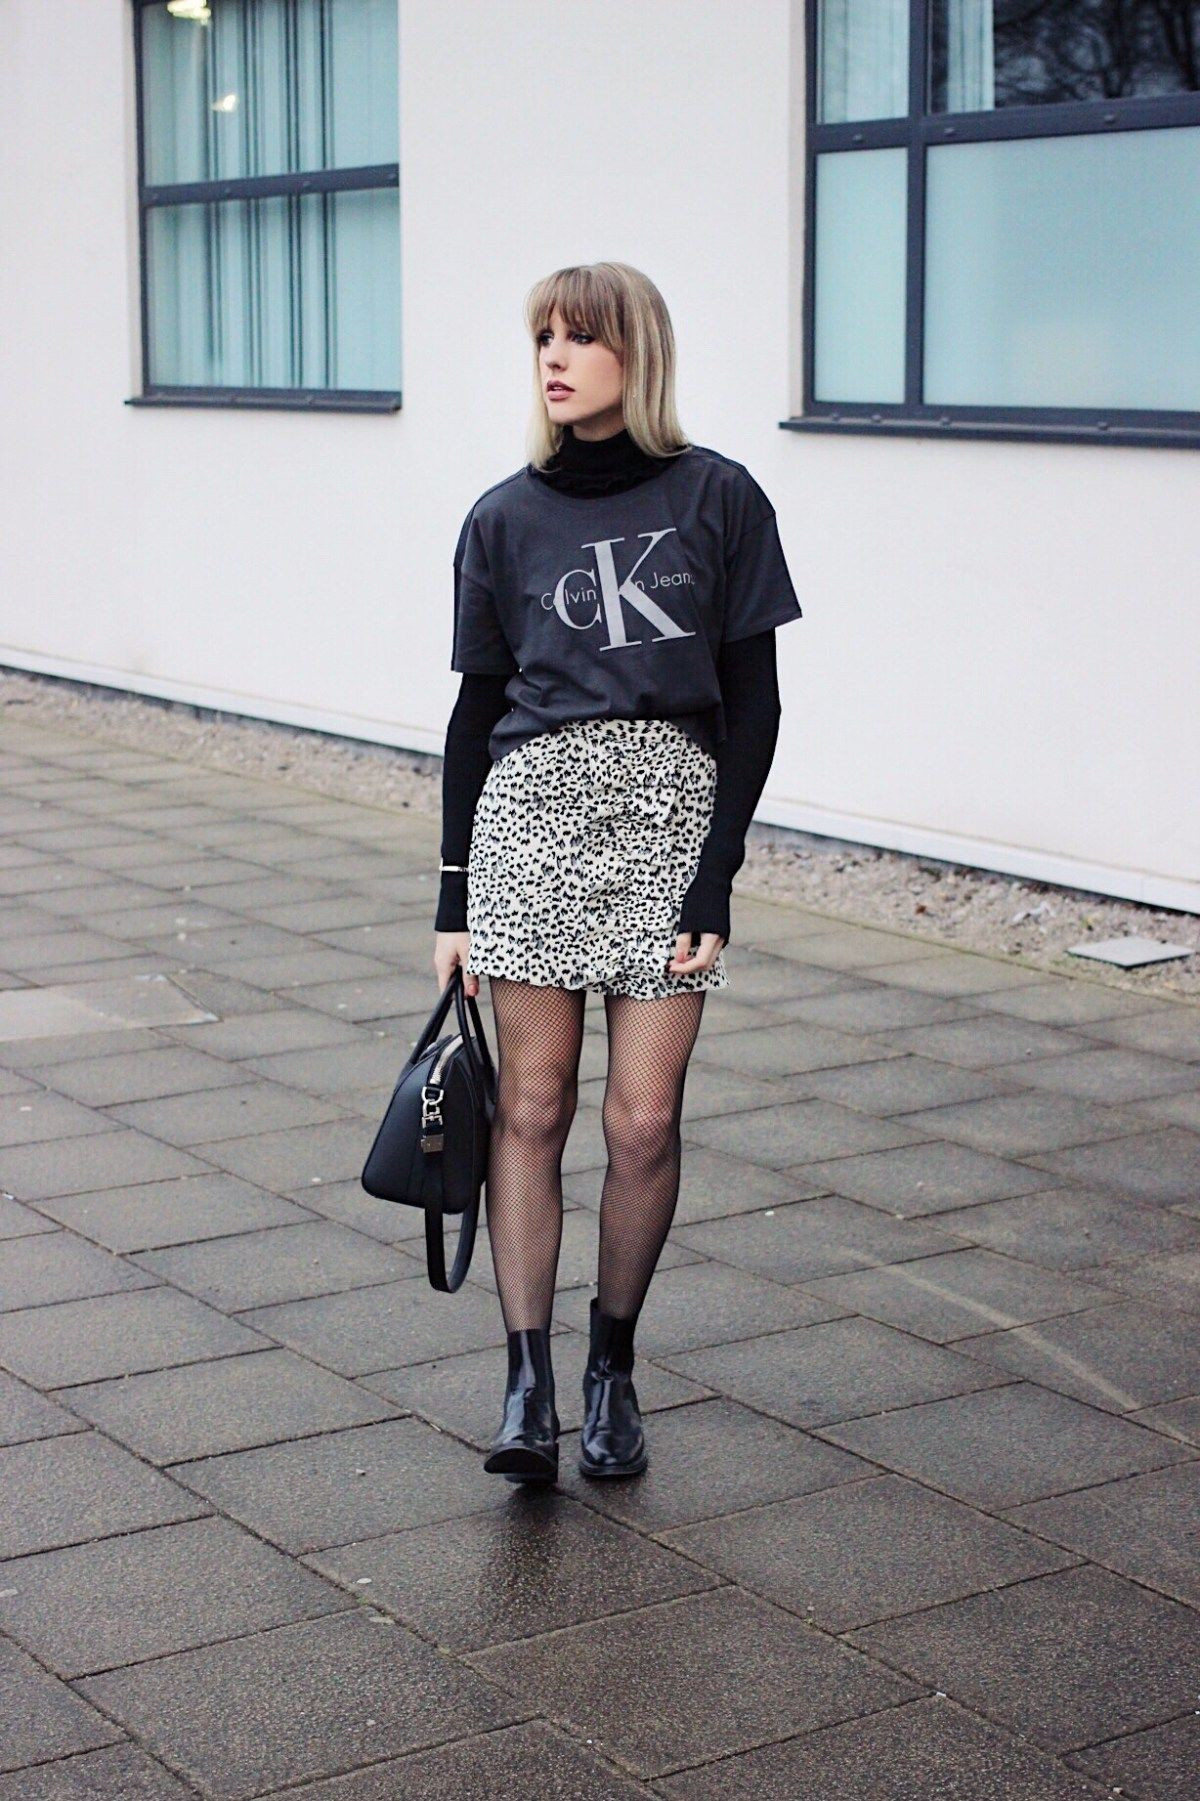 Styling Leopard Print Minimalist Outfit